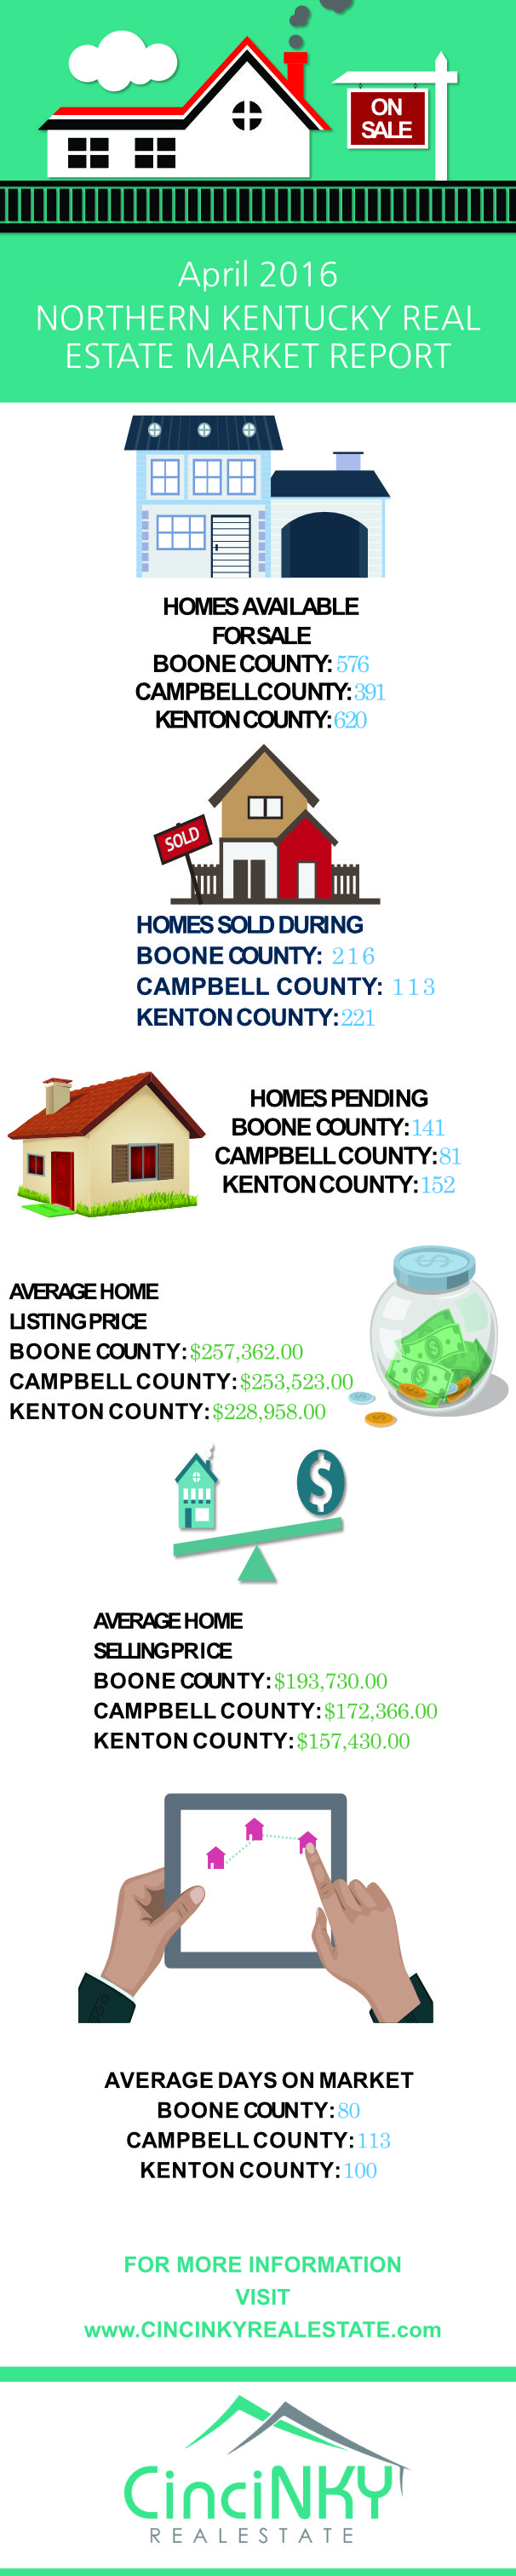 April 2016 Northern Kentucky Real Estate Market Report infographic